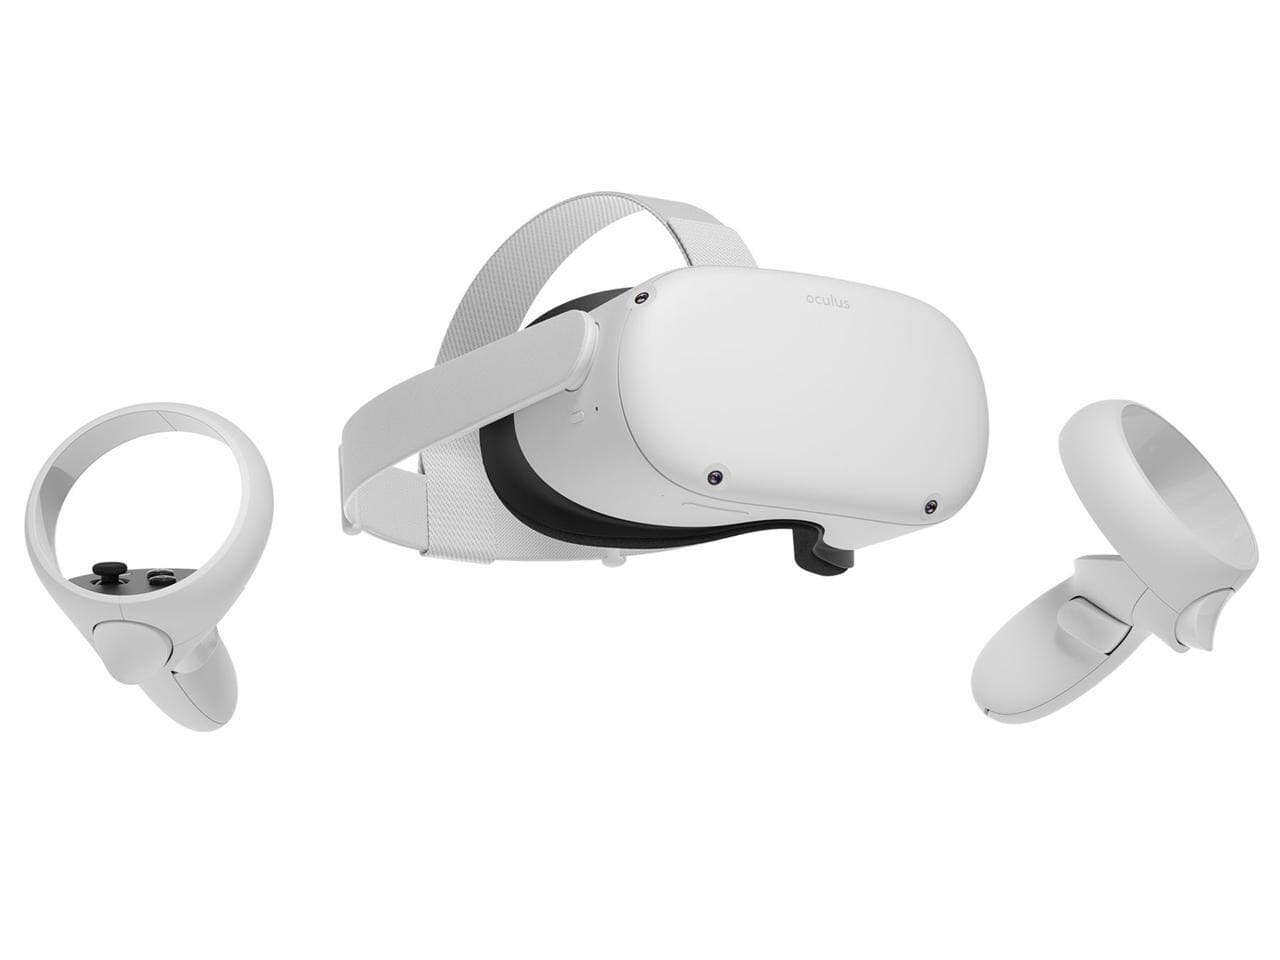 Newegg Oculus Quest Combo Sale: Starting at $348.99